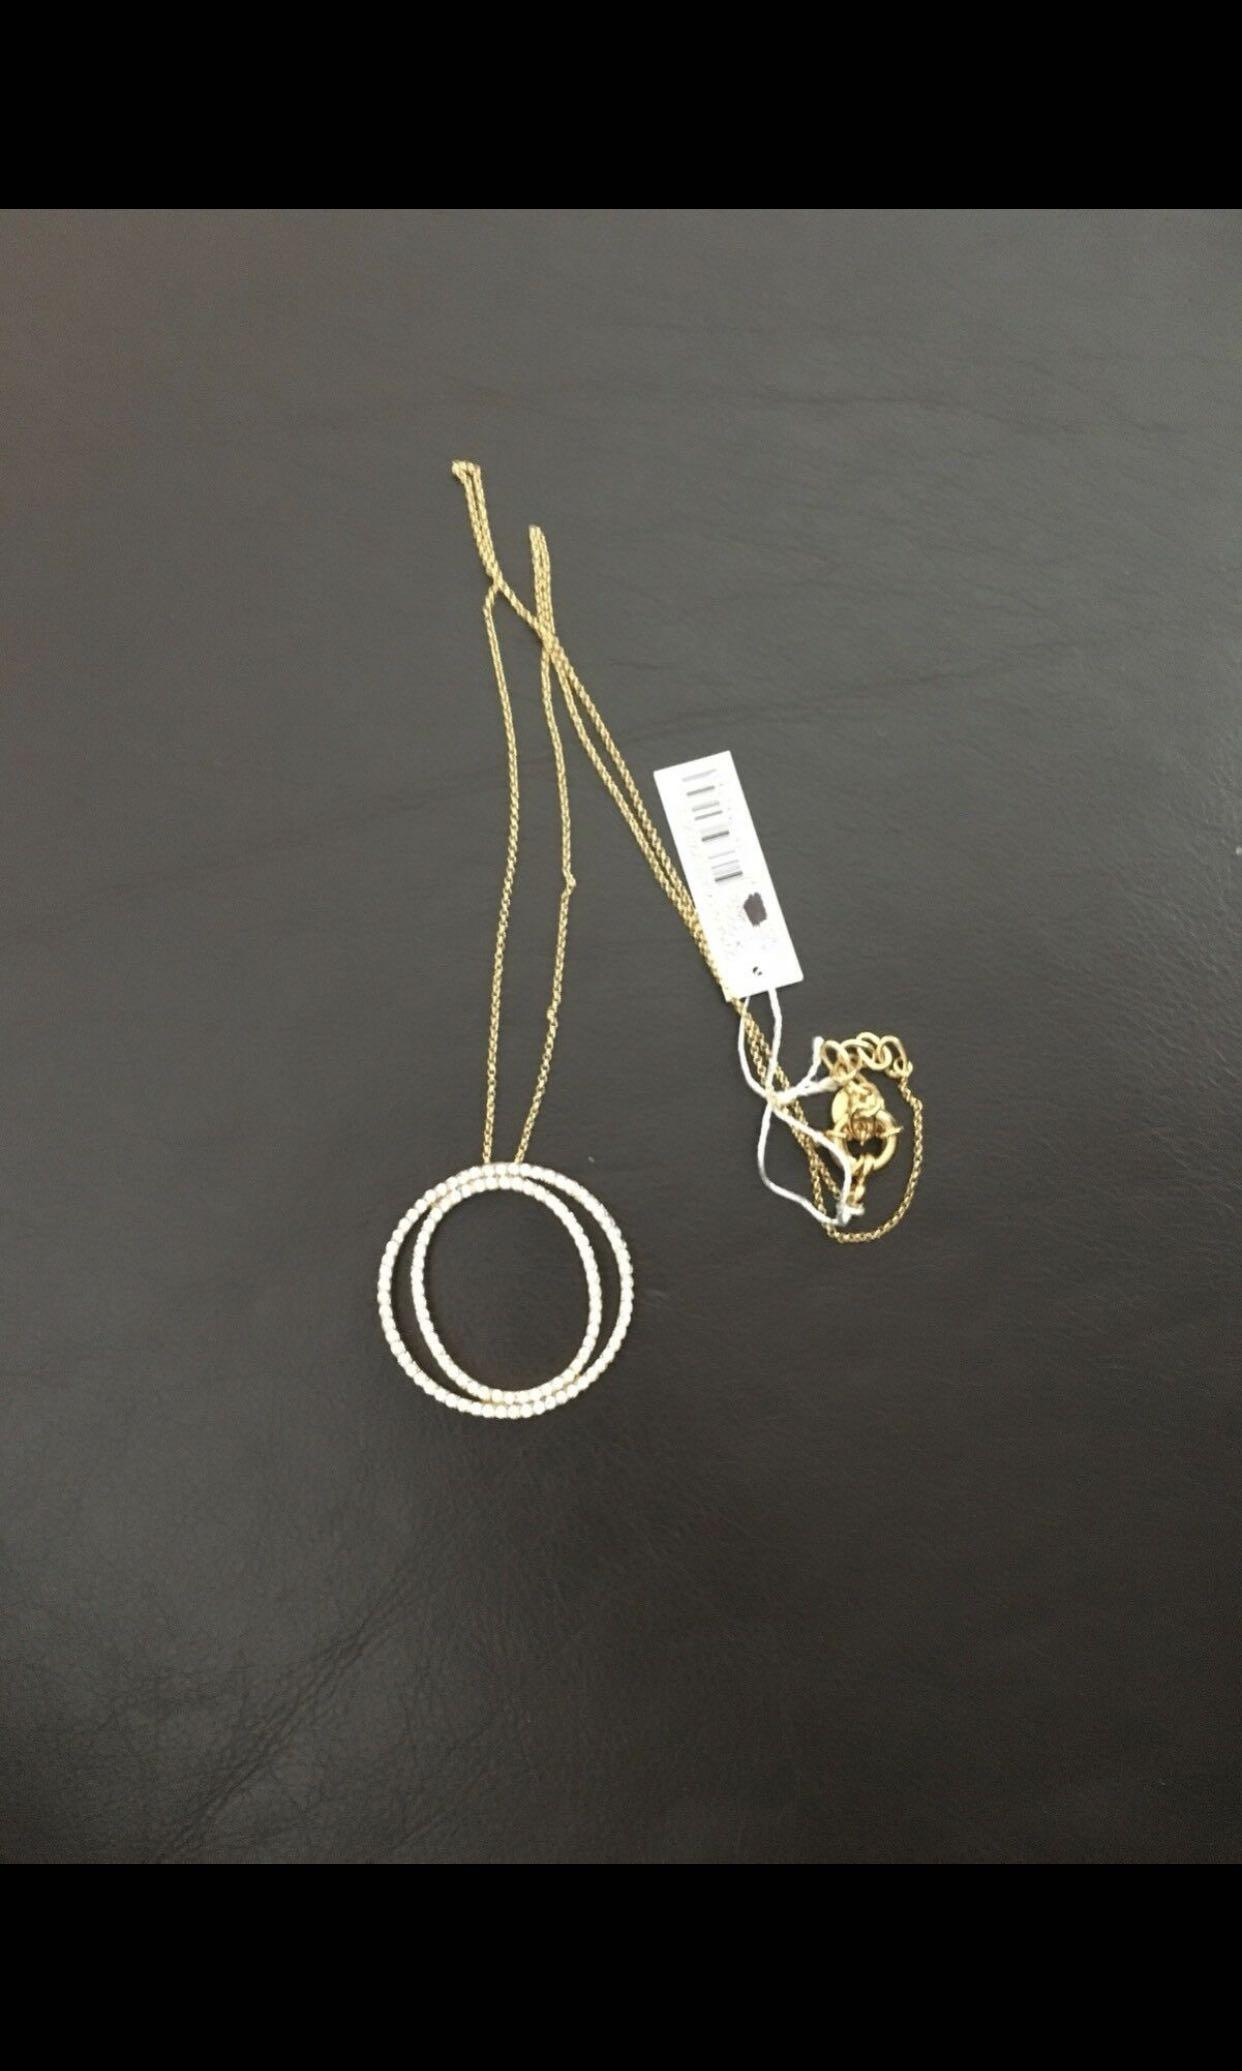 BMWT Oroton 10k gold plated necklace